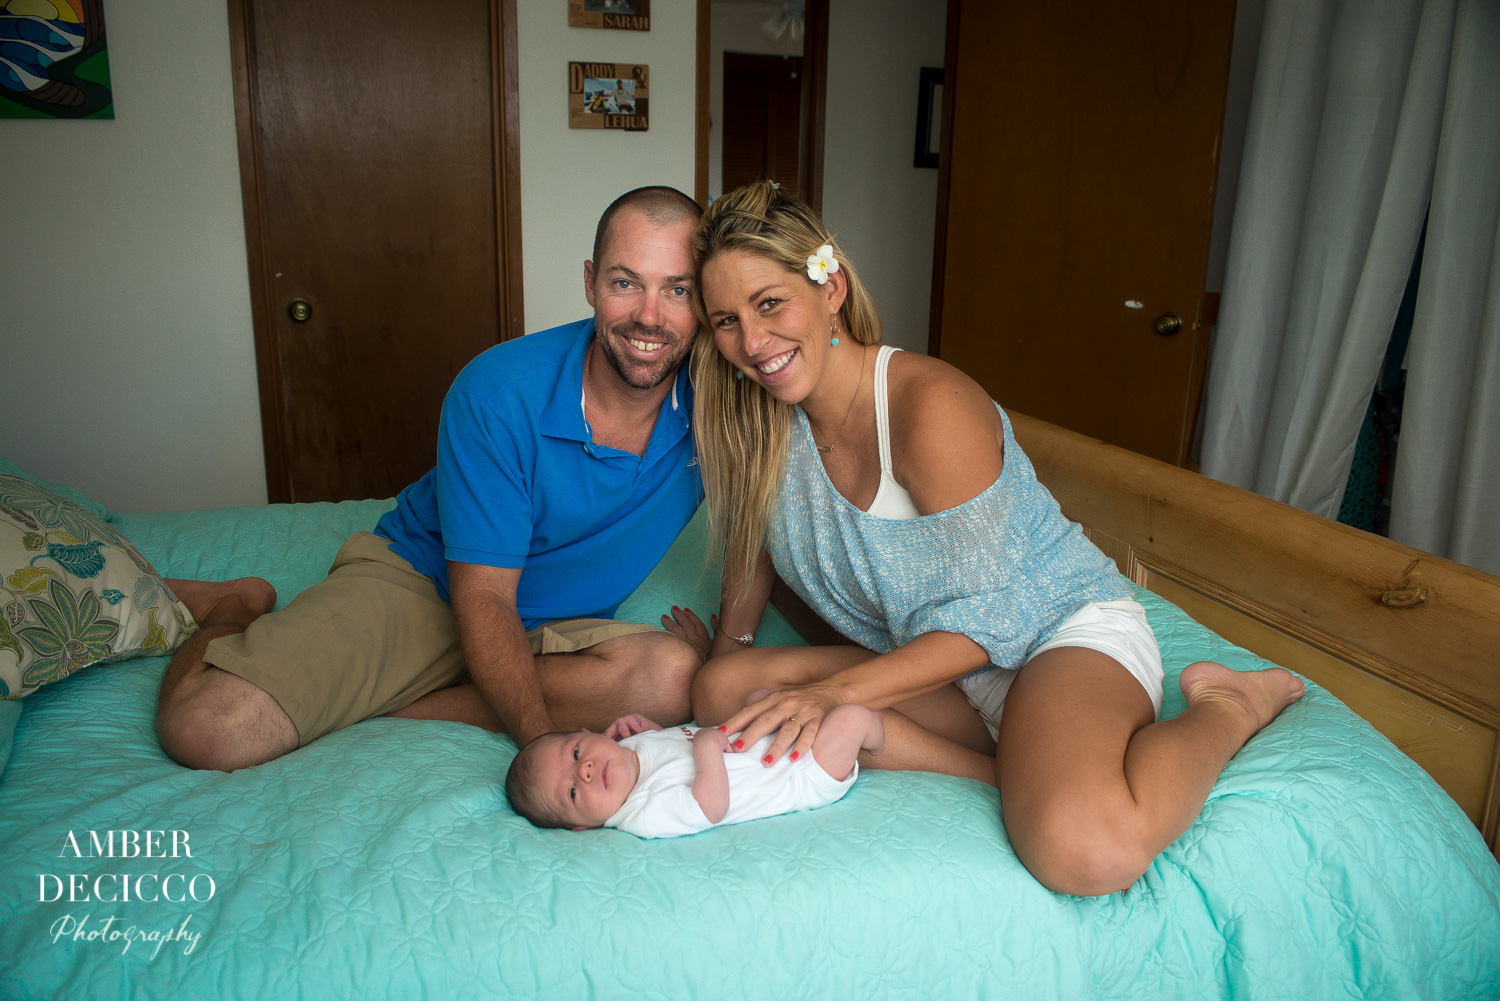 Family Photograph with a newborn